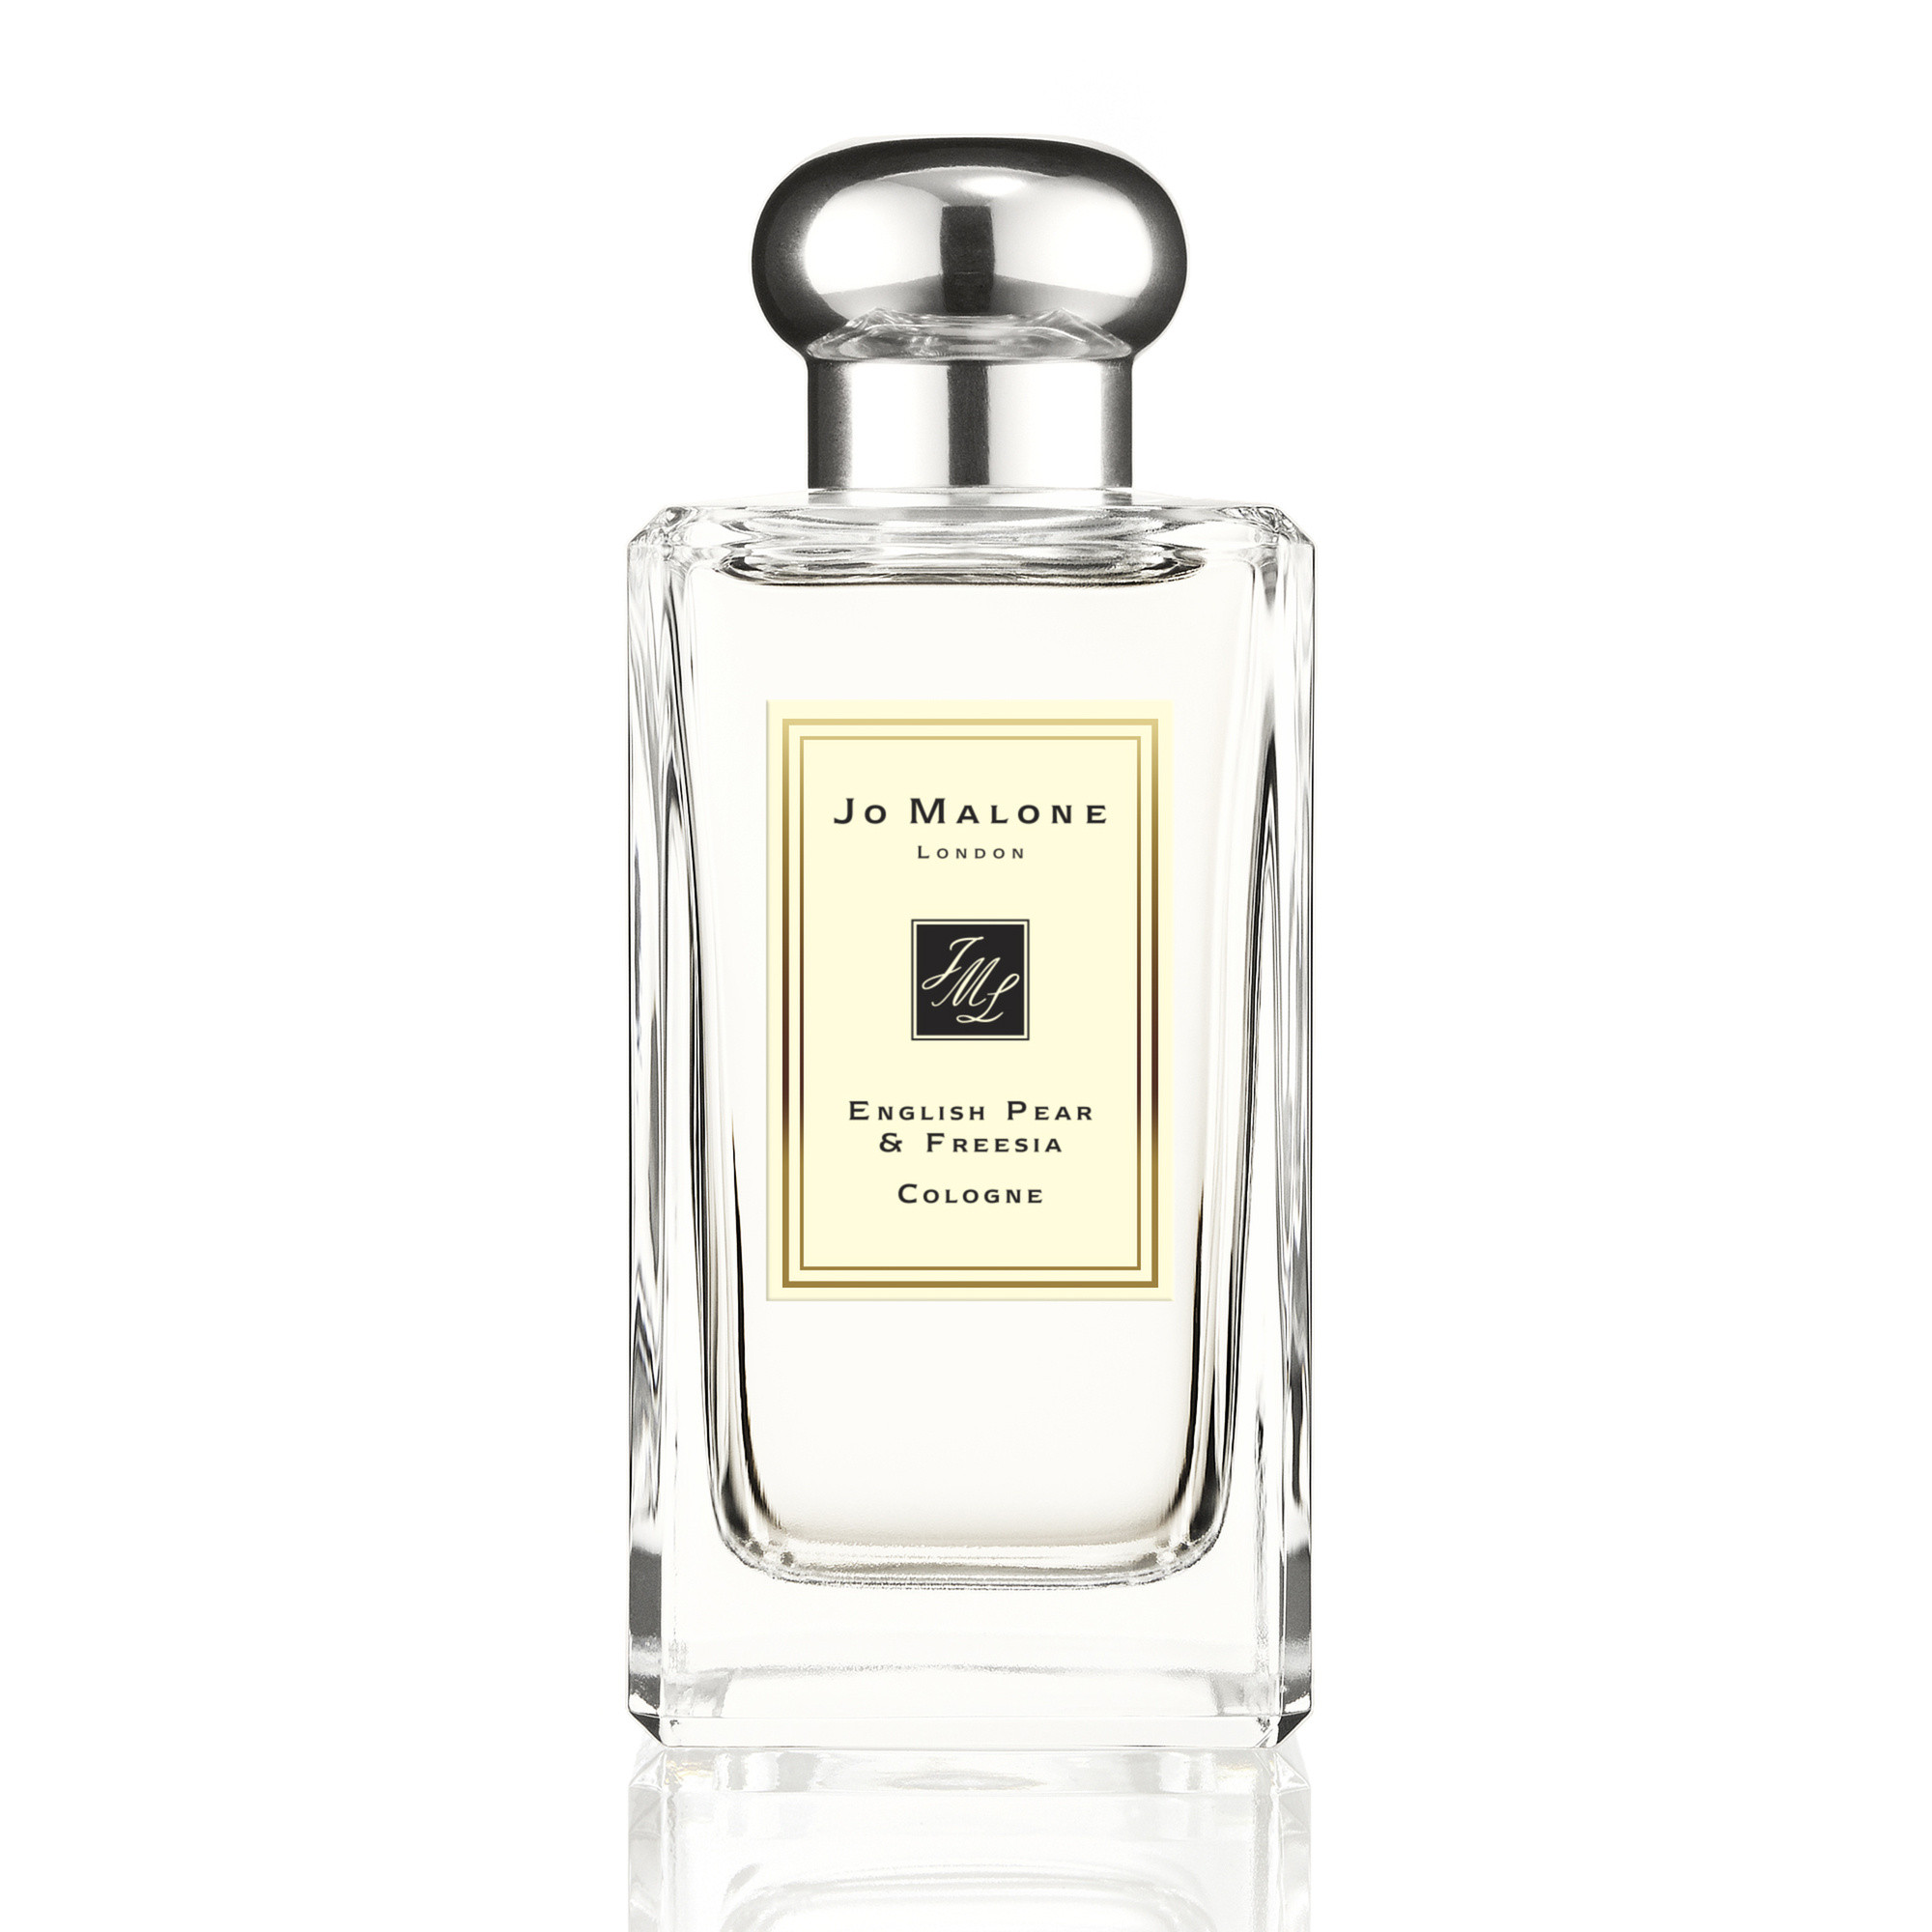 Jo Malone London english pear & freesia cologne 100 ml, Beige, large image number 0